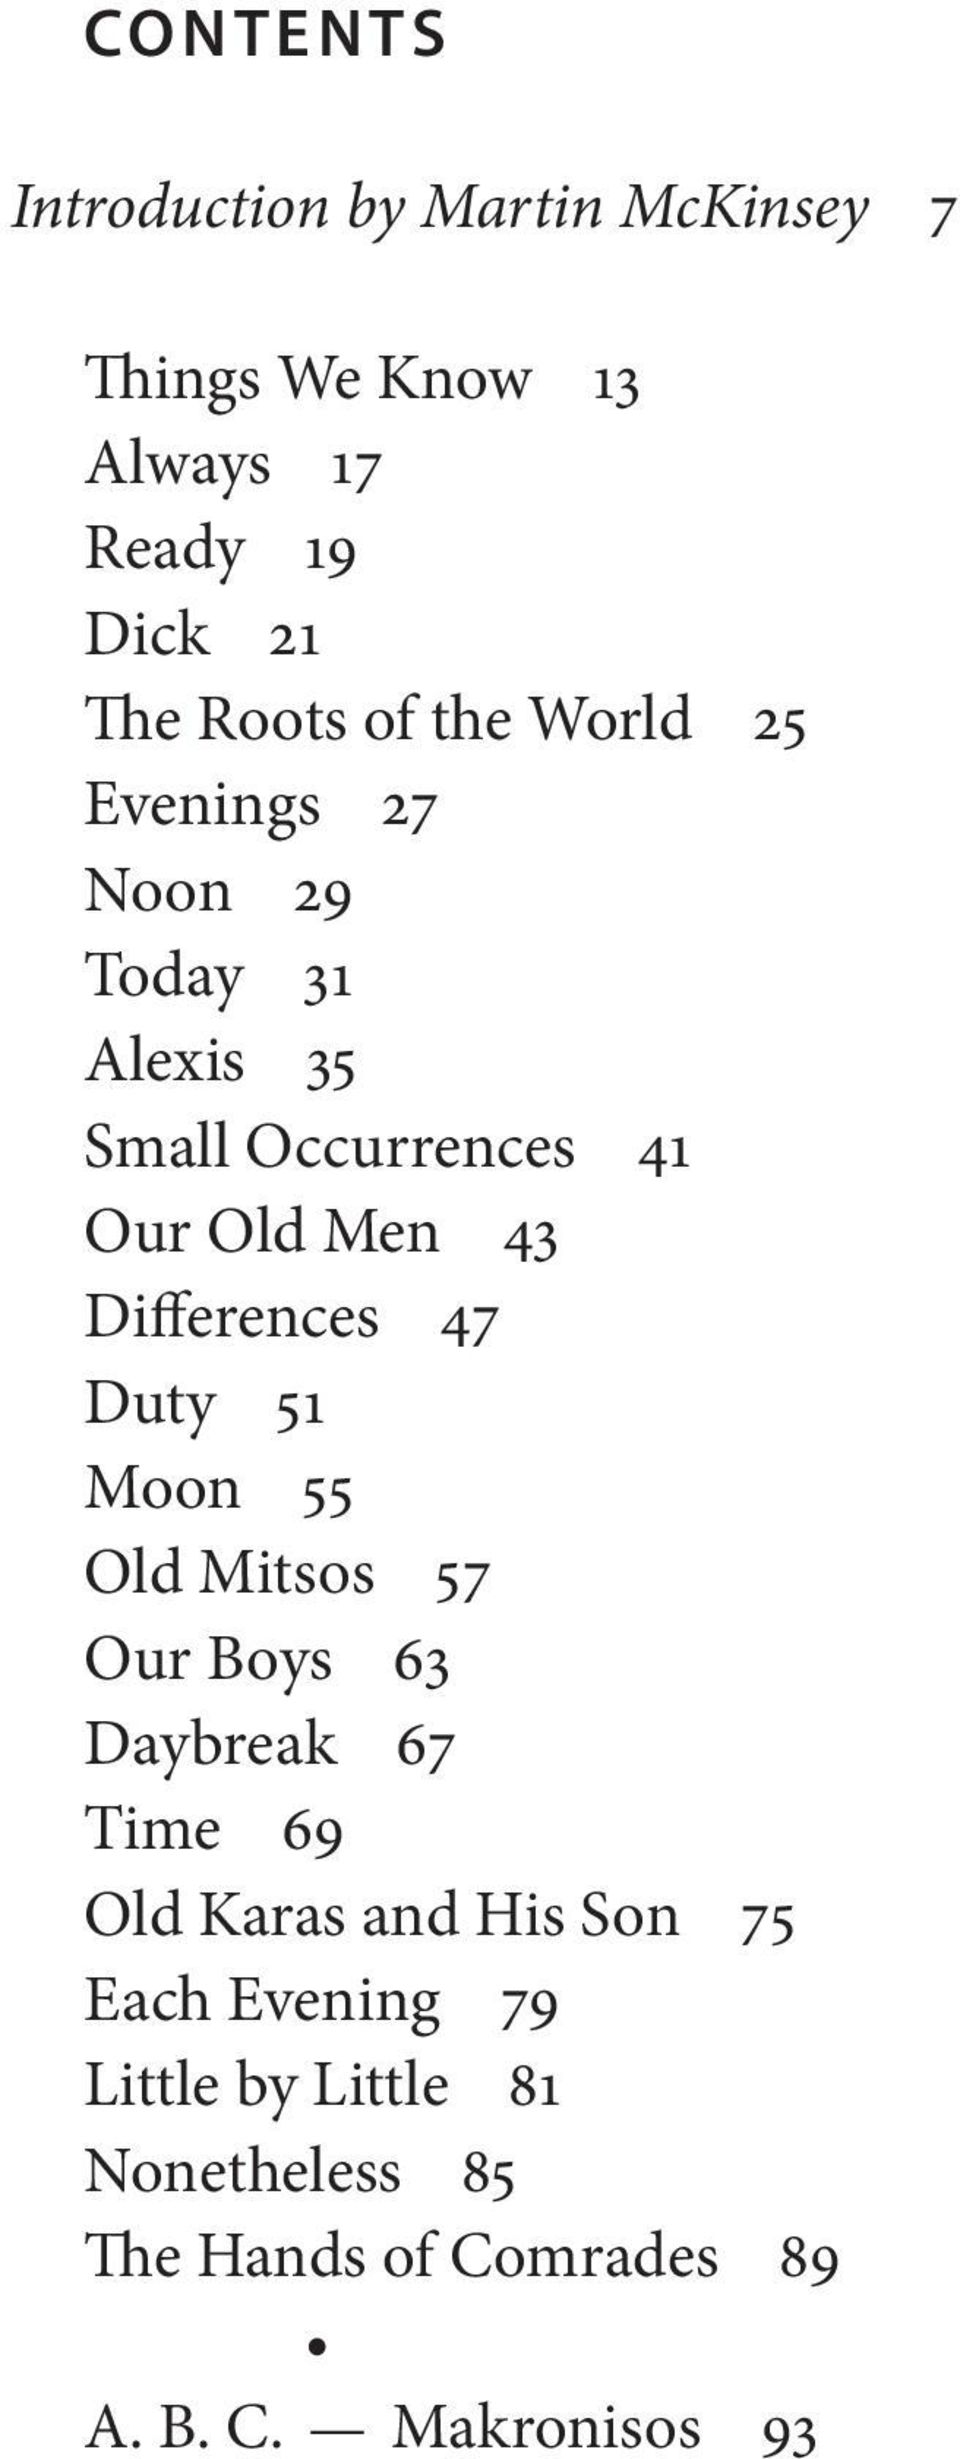 Differences 47 Duty 51 Moon 55 Old Mitsos 57 Our Boys 63 Daybreak 67 Time 69 Old Karas and His